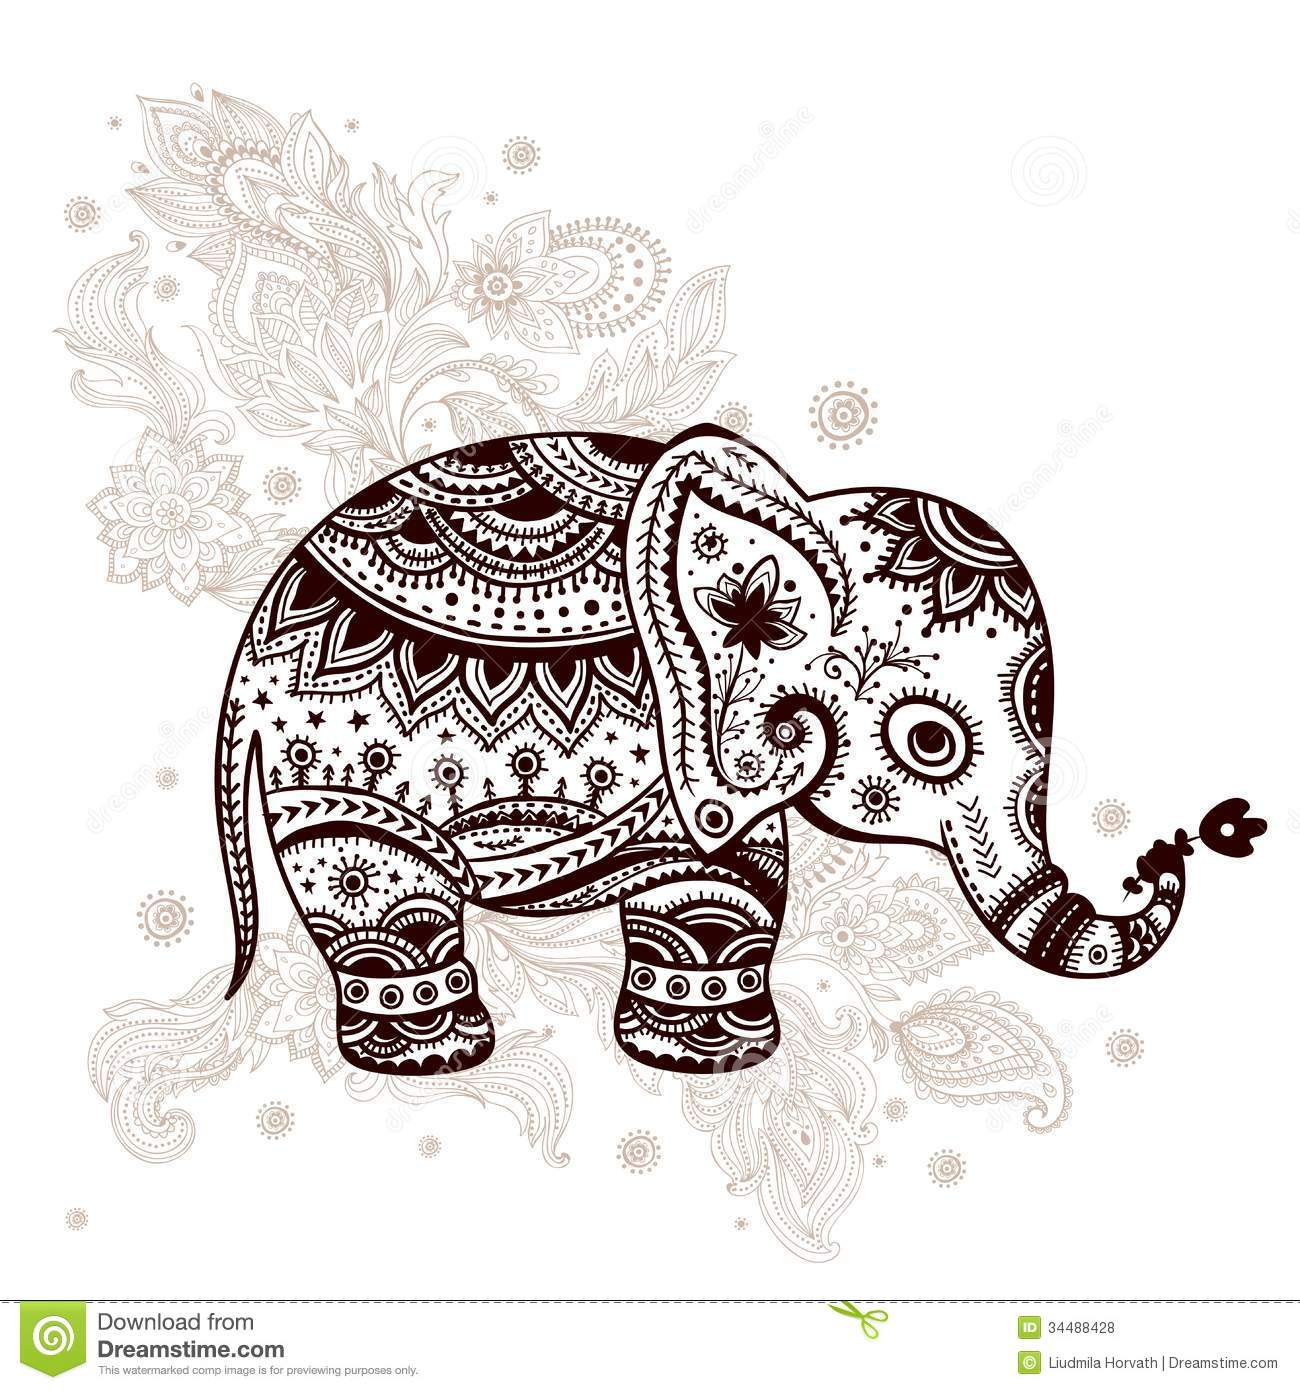 Ethnic elephant illustration can be used as a greeting card Vintage Elephant Illustration